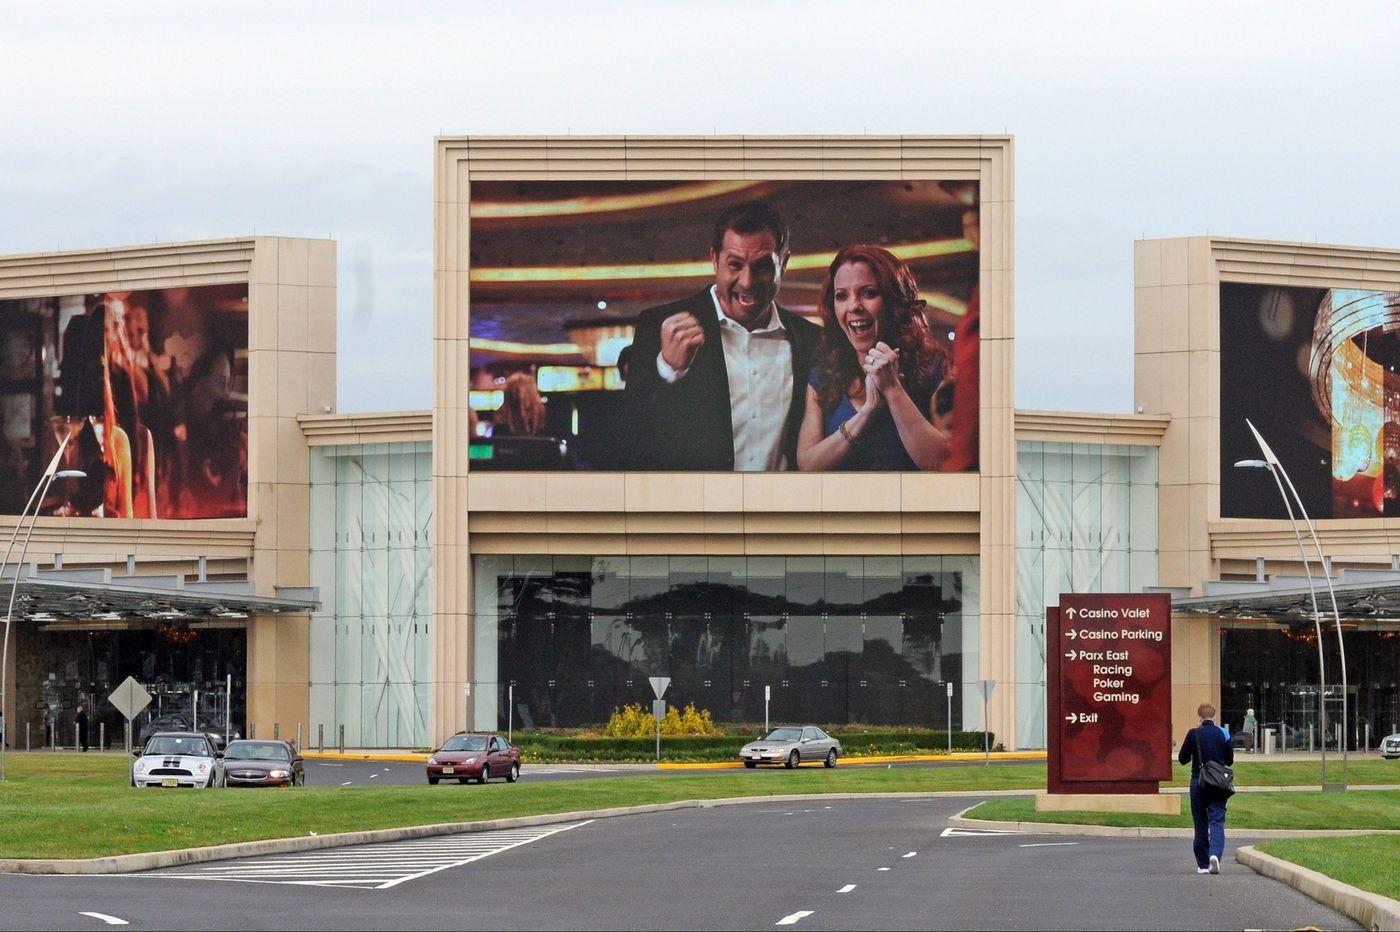 Both rivers casino and sugarhouse casino launched their pennsylvania sportsbooks on dec 13